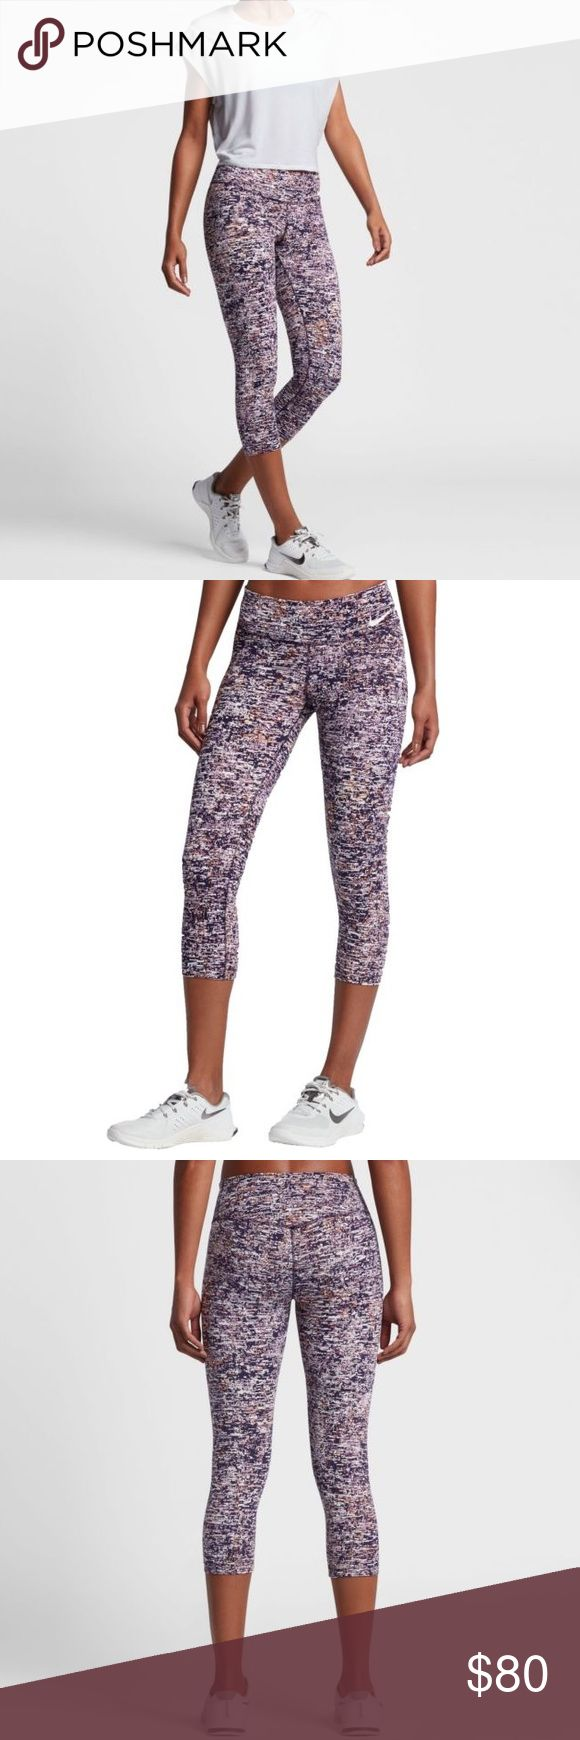 "NWT - NIKE Power Legendary Training Capris Authentic Women's NIKE Power Legendary Training Capris • color: Bleach Lilac/Purp Dynasty • Compression Capris • 19"" inseam • Form-fitting design with Nike® Power material effortlessly moves & stretches with your body for a slimming fit & amazing mobility • Mid-rise, elastic waistband provides slimming shape & locked-in support • Flatlock seams prevent irritation caused by chafing • Interior waistband pocket • BNWT Nike Pants Capris"